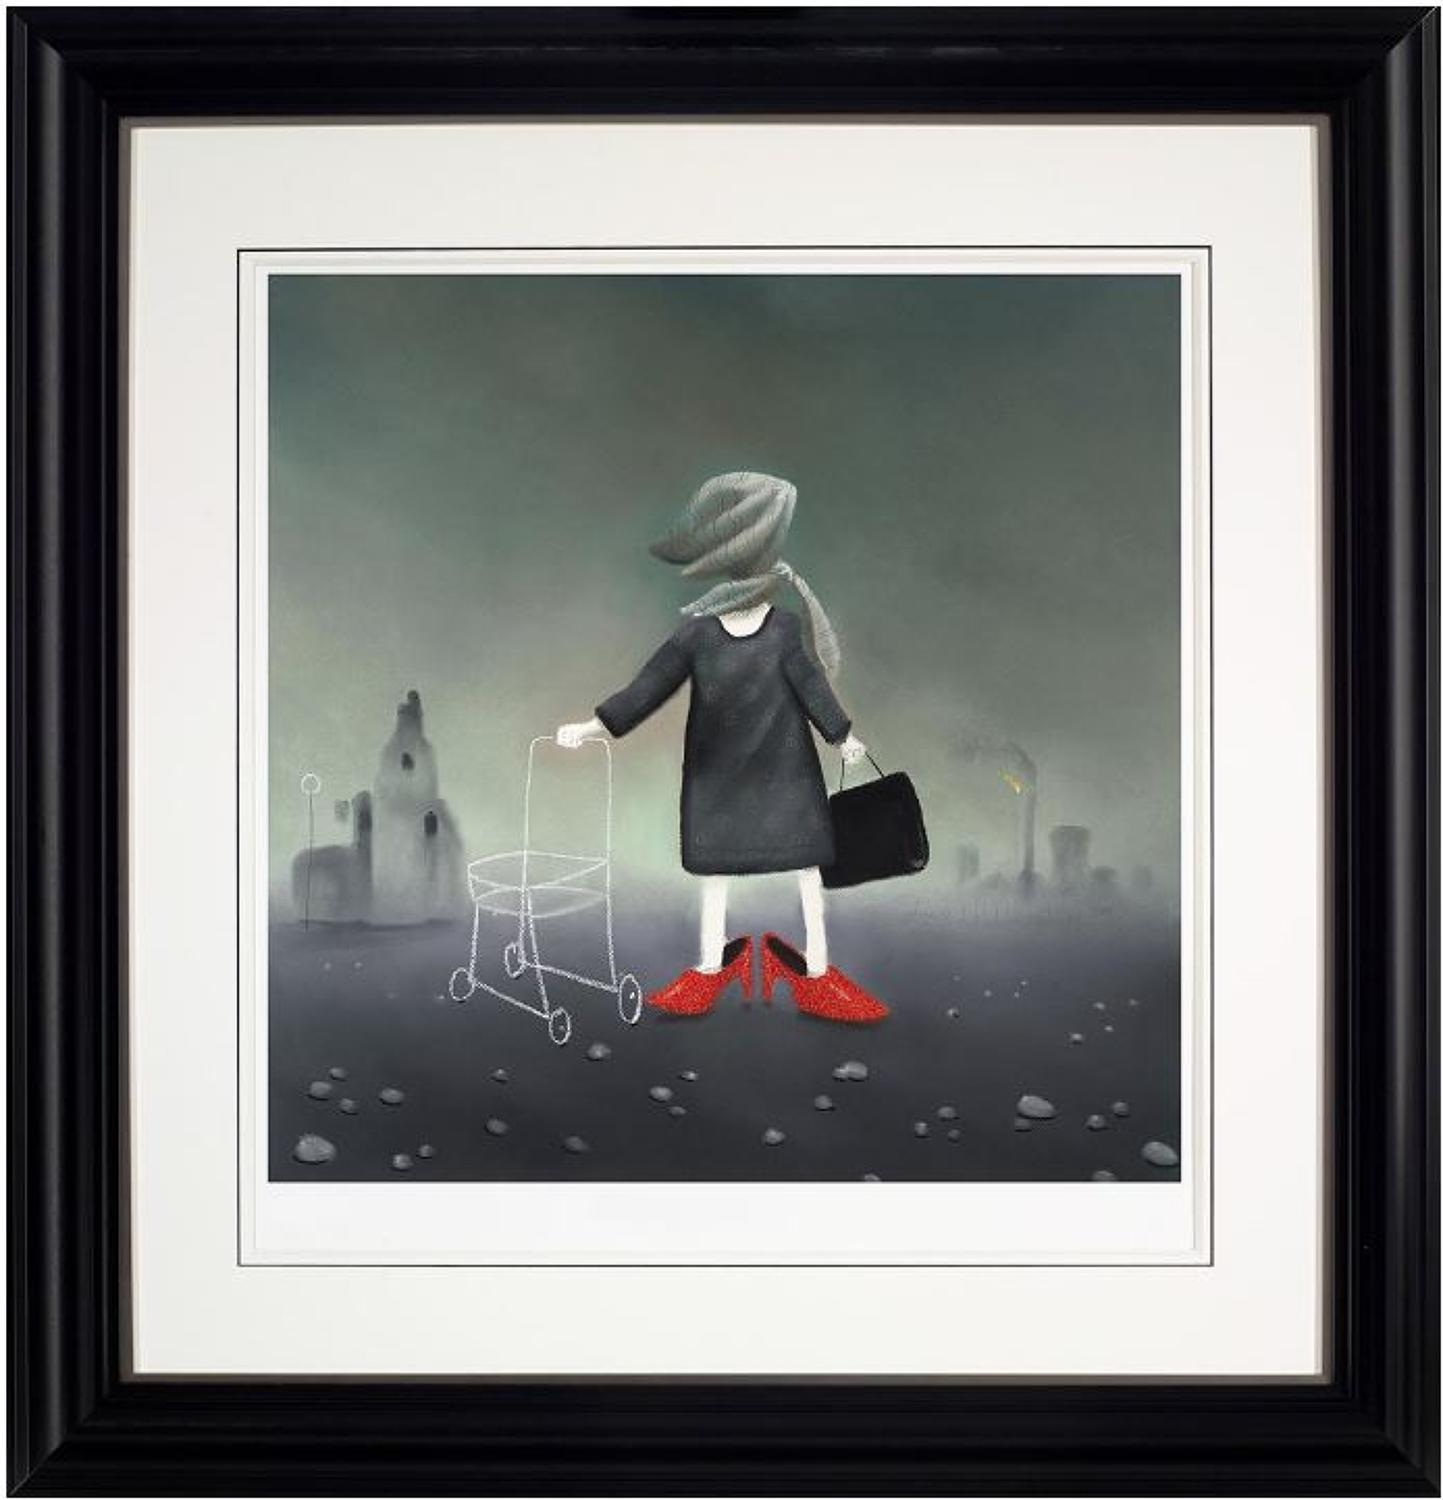 Sunday best framed art print by Mackenzie Thorpe